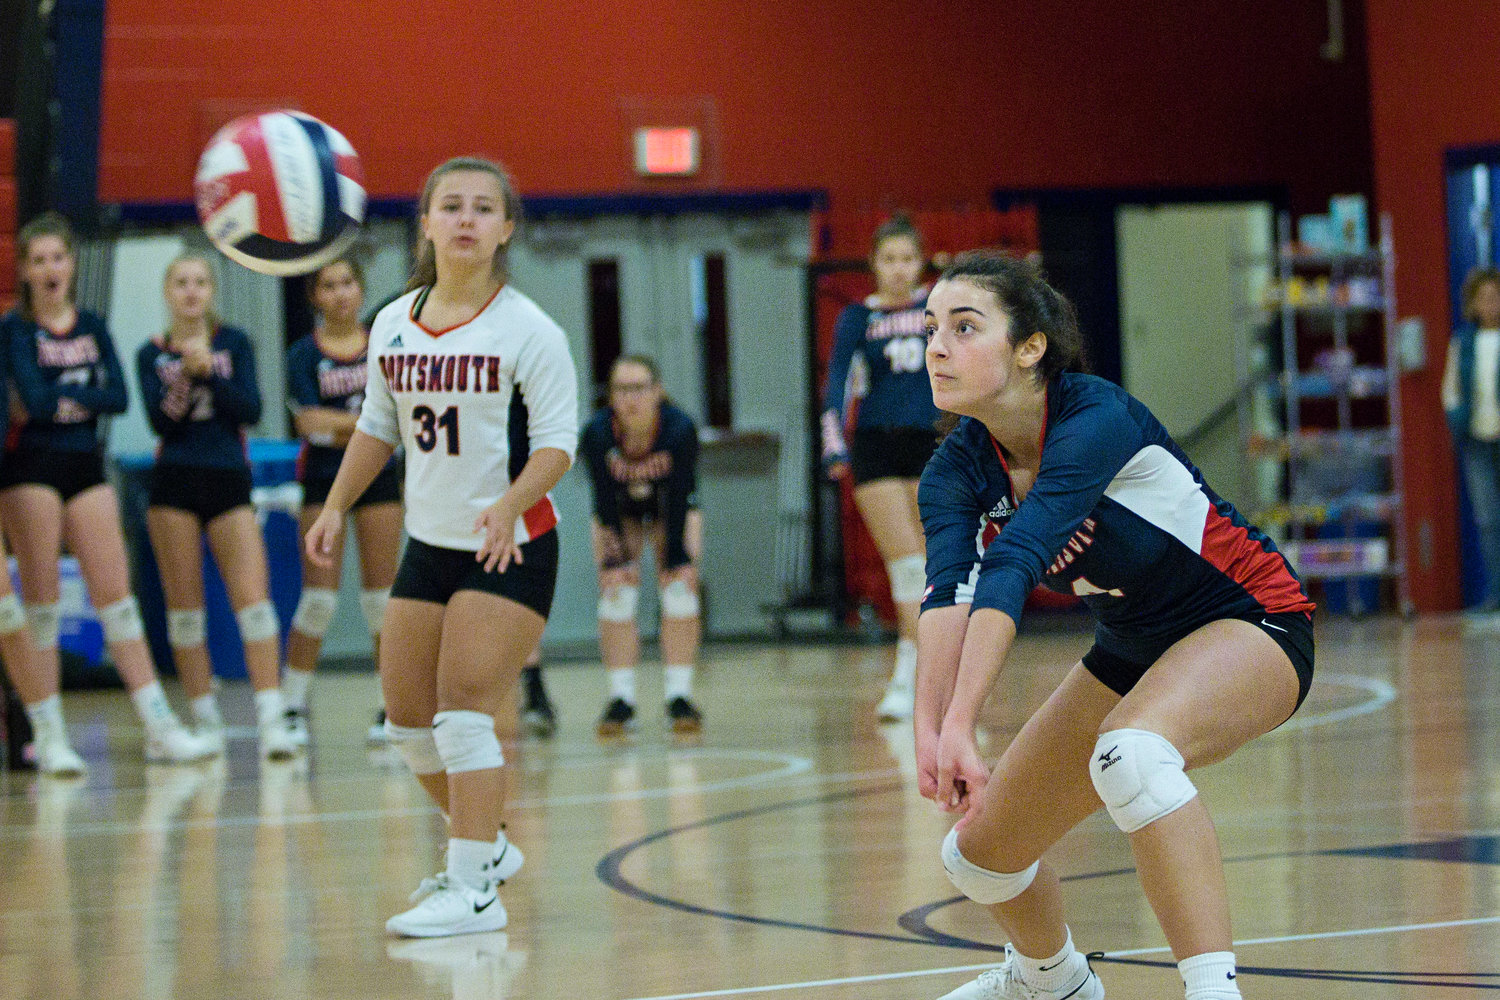 Kylie Donovan (left) looks on as Megan Lehane handles a serve from the Exeter-West Greenwich side.